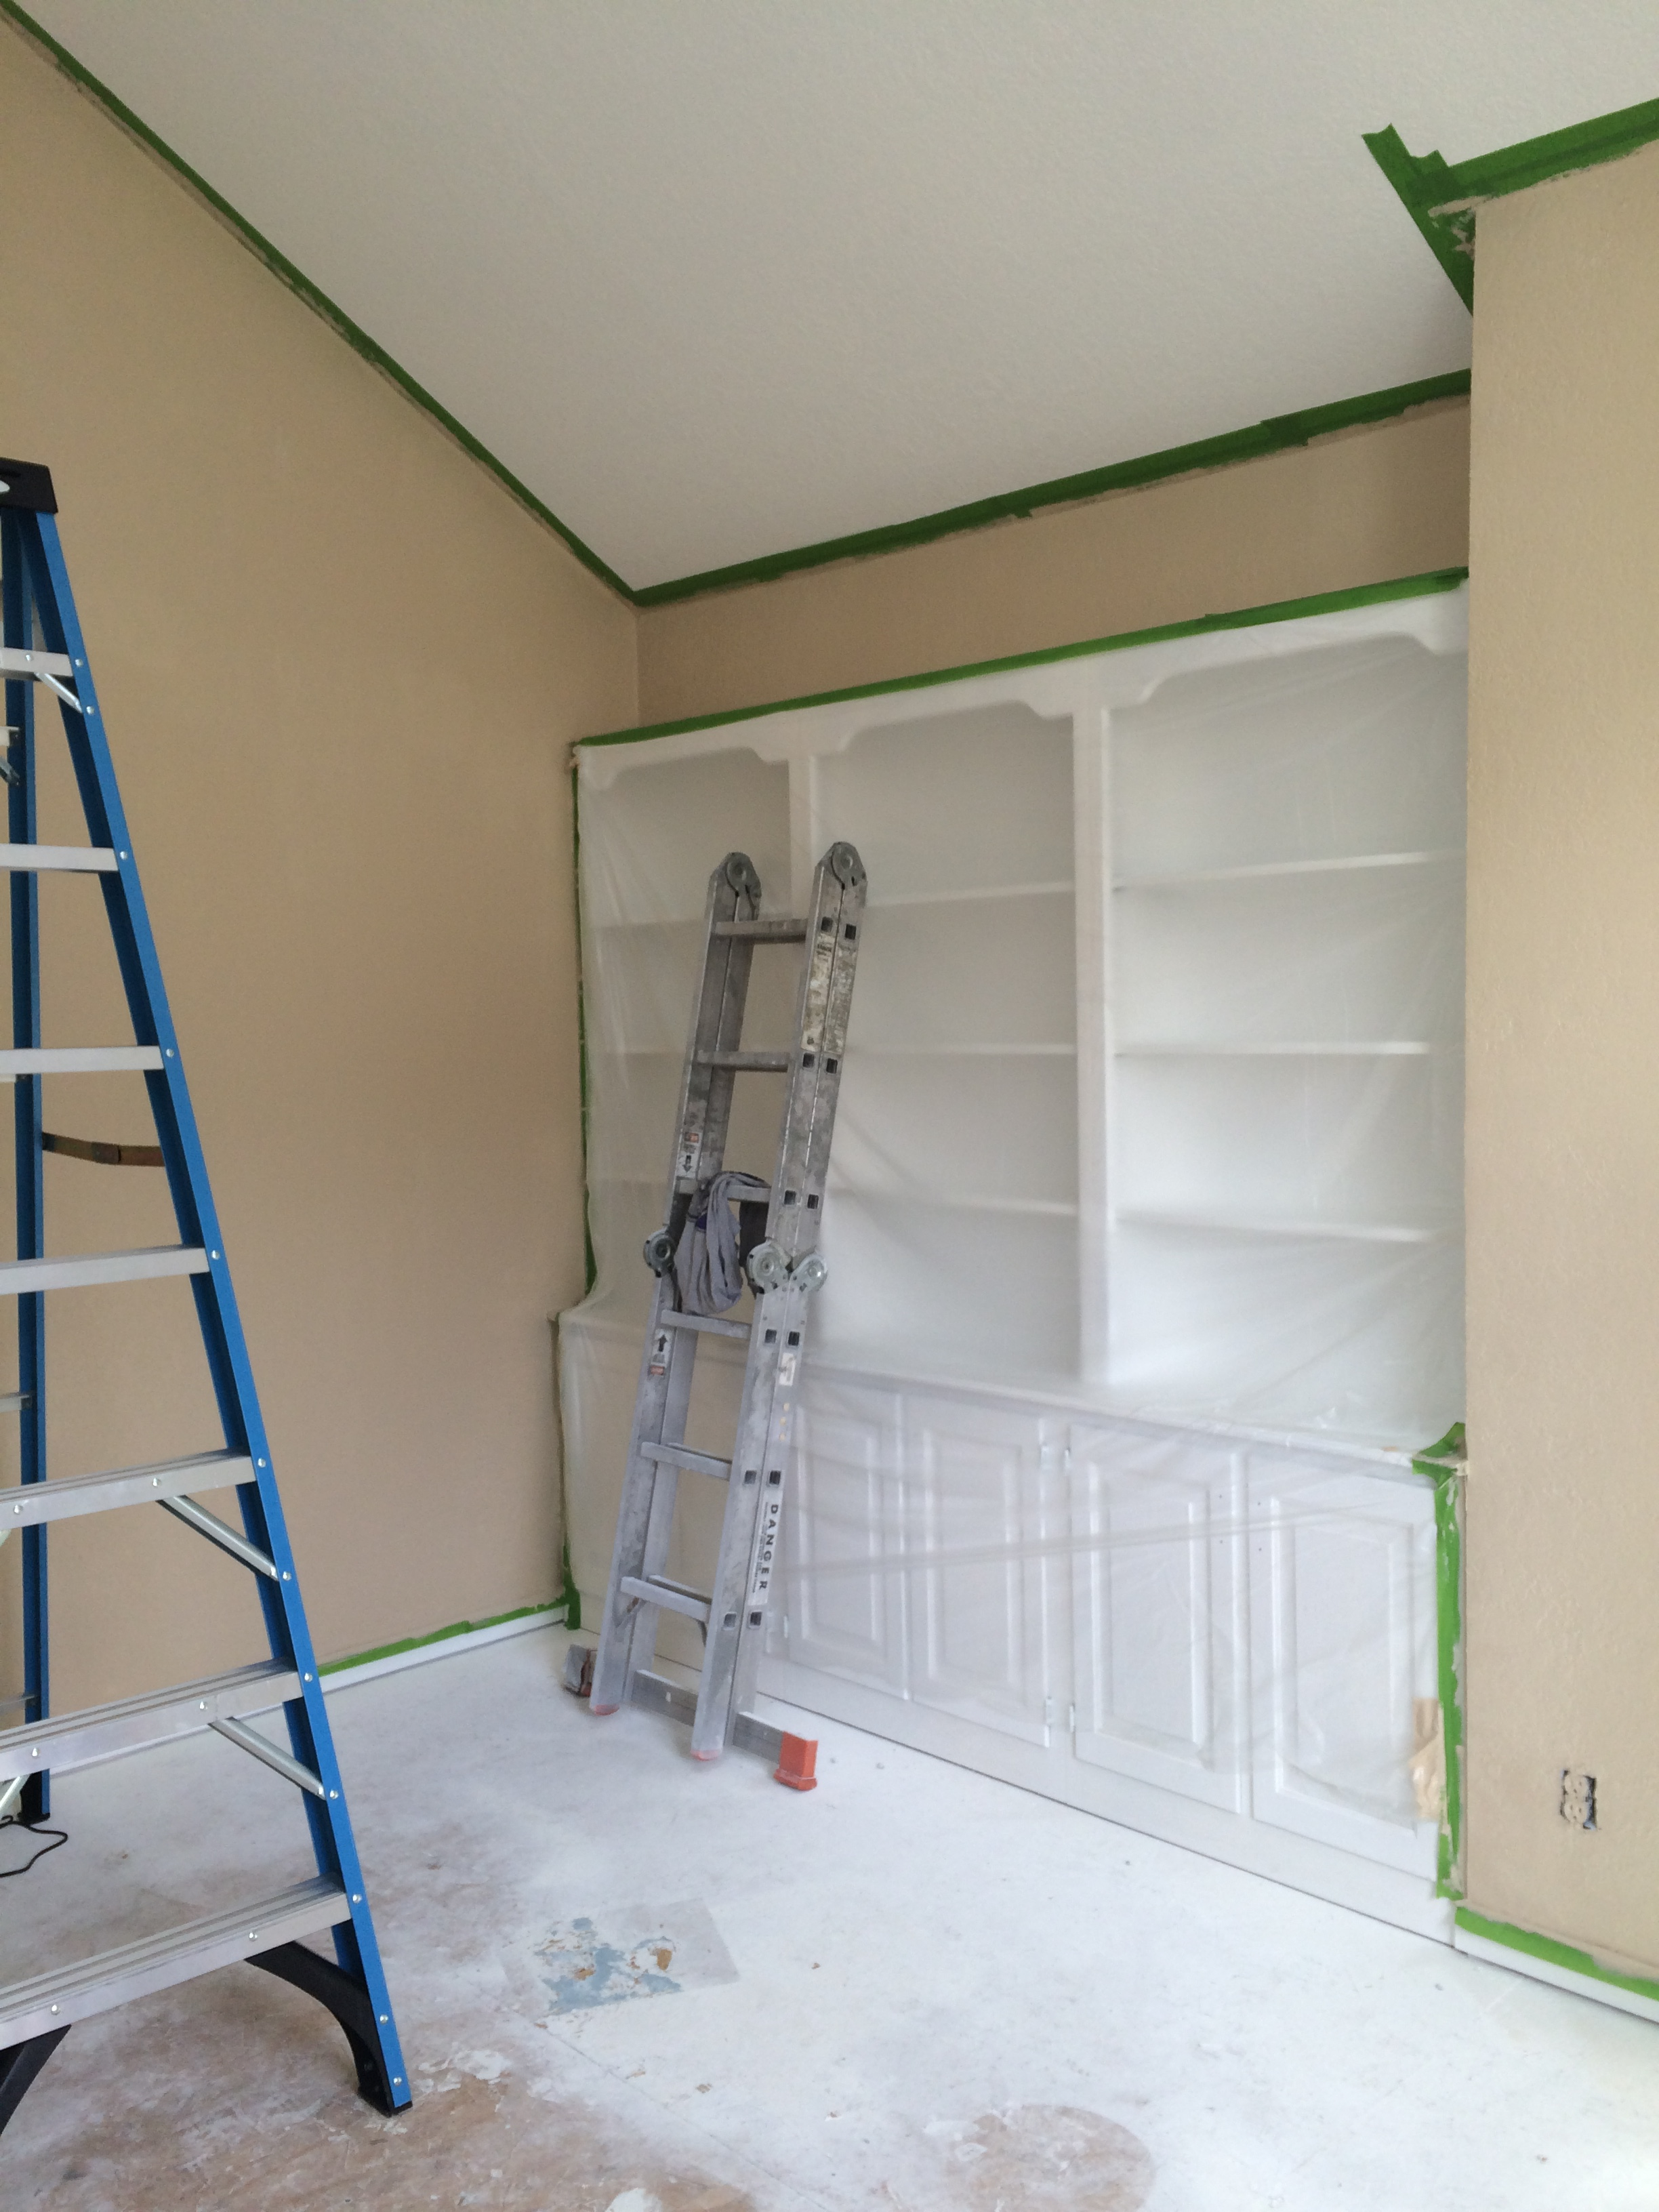 brian's office painted